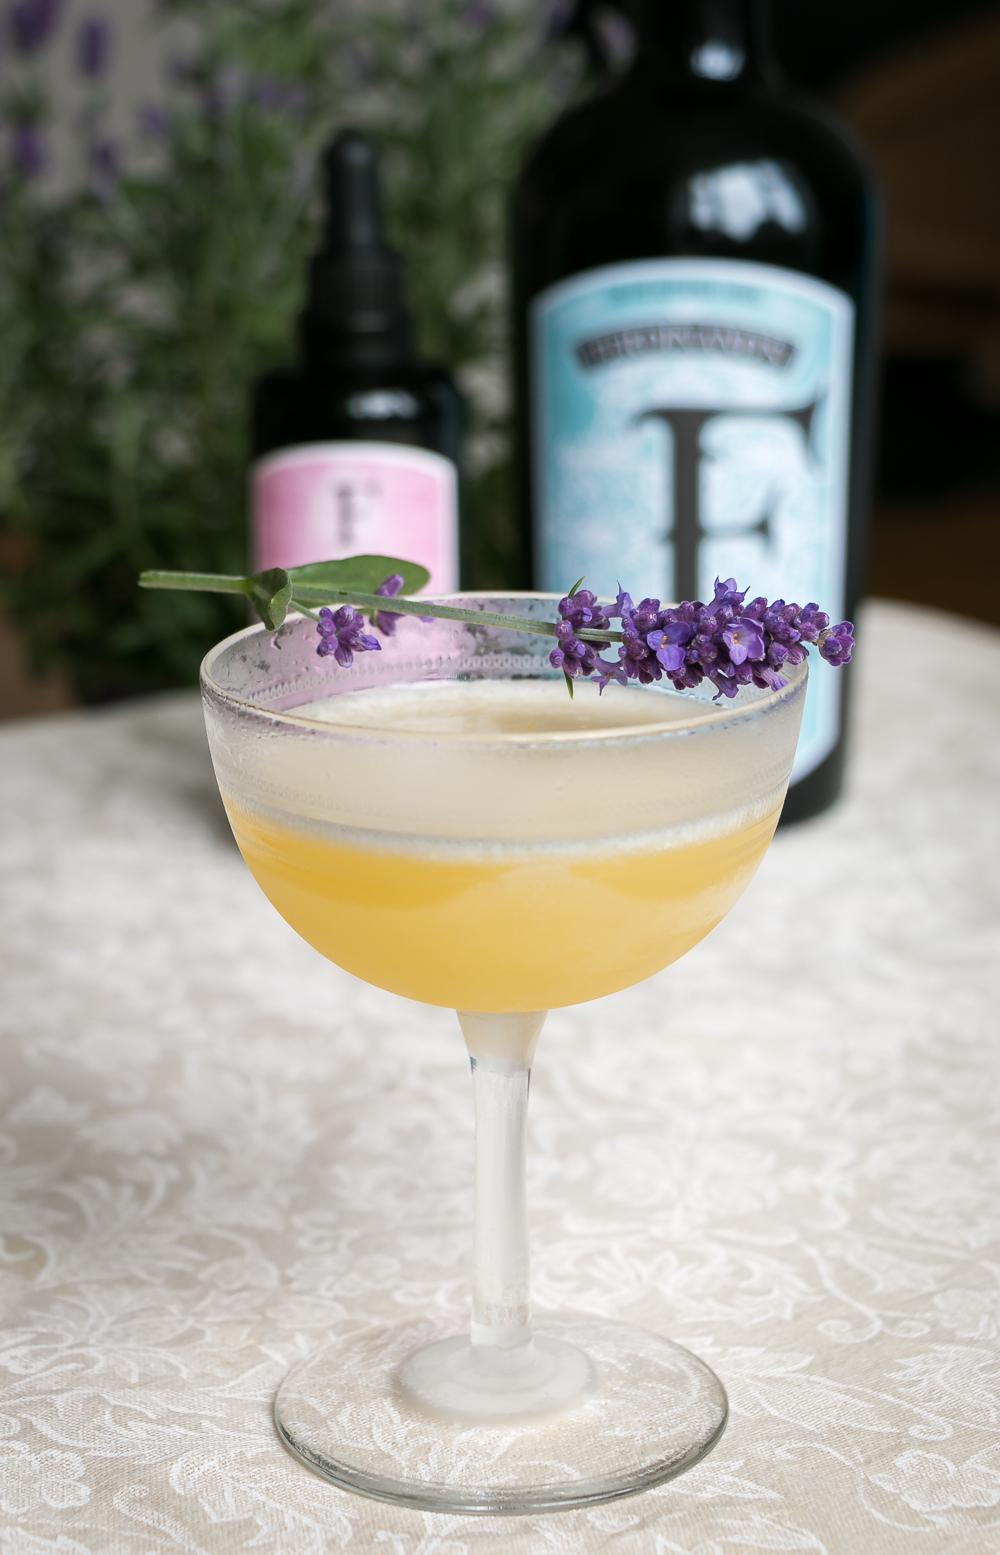 Bee's Knees with Ferdinand's Saar Dry Gin and bitter. Photo by Michael Sperling.